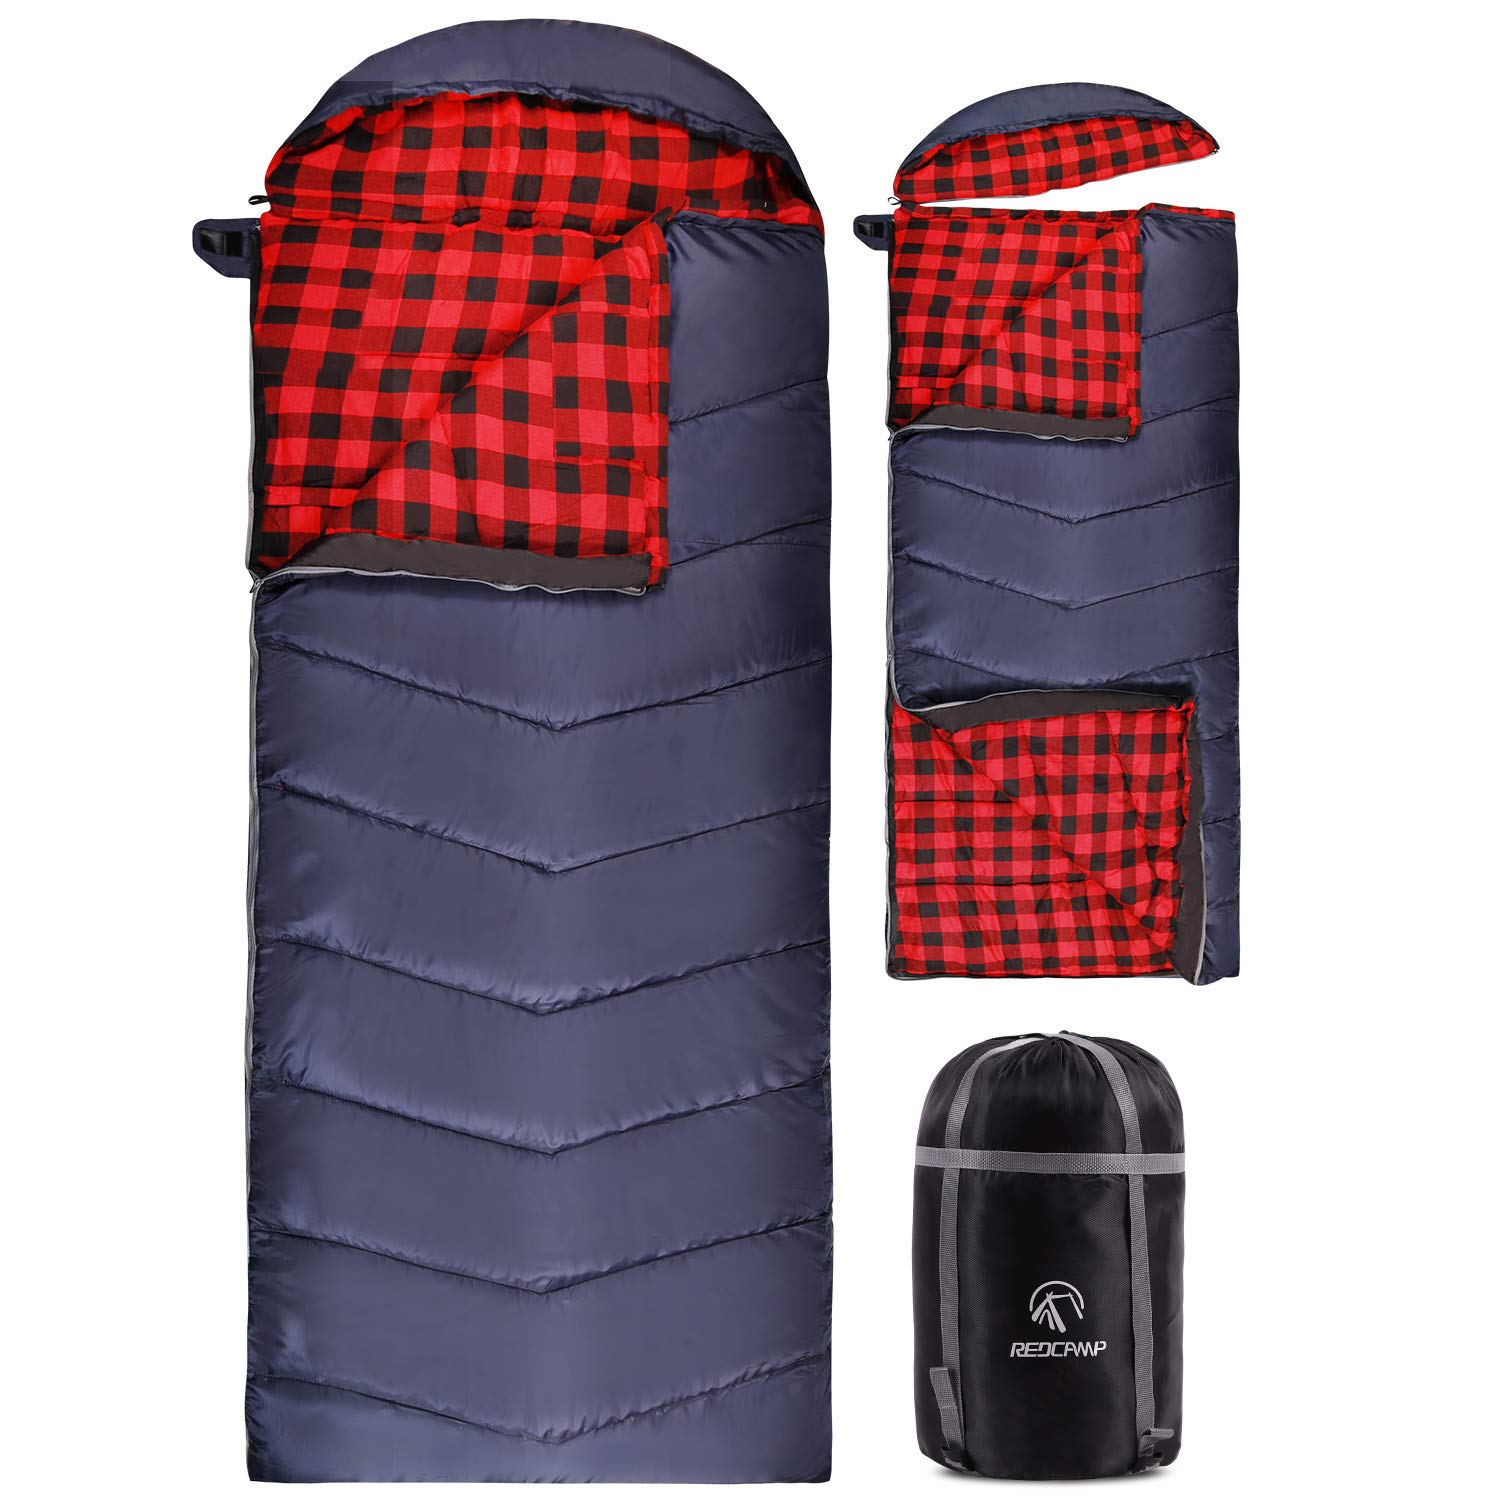 REDCAMP Flannel Sleeping Bag for Adults, Large Cotton Sleeping Bags for Camping with Detachable Hood, Red Plaid with 4lbs Filling (91''x33'') by REDCAMP